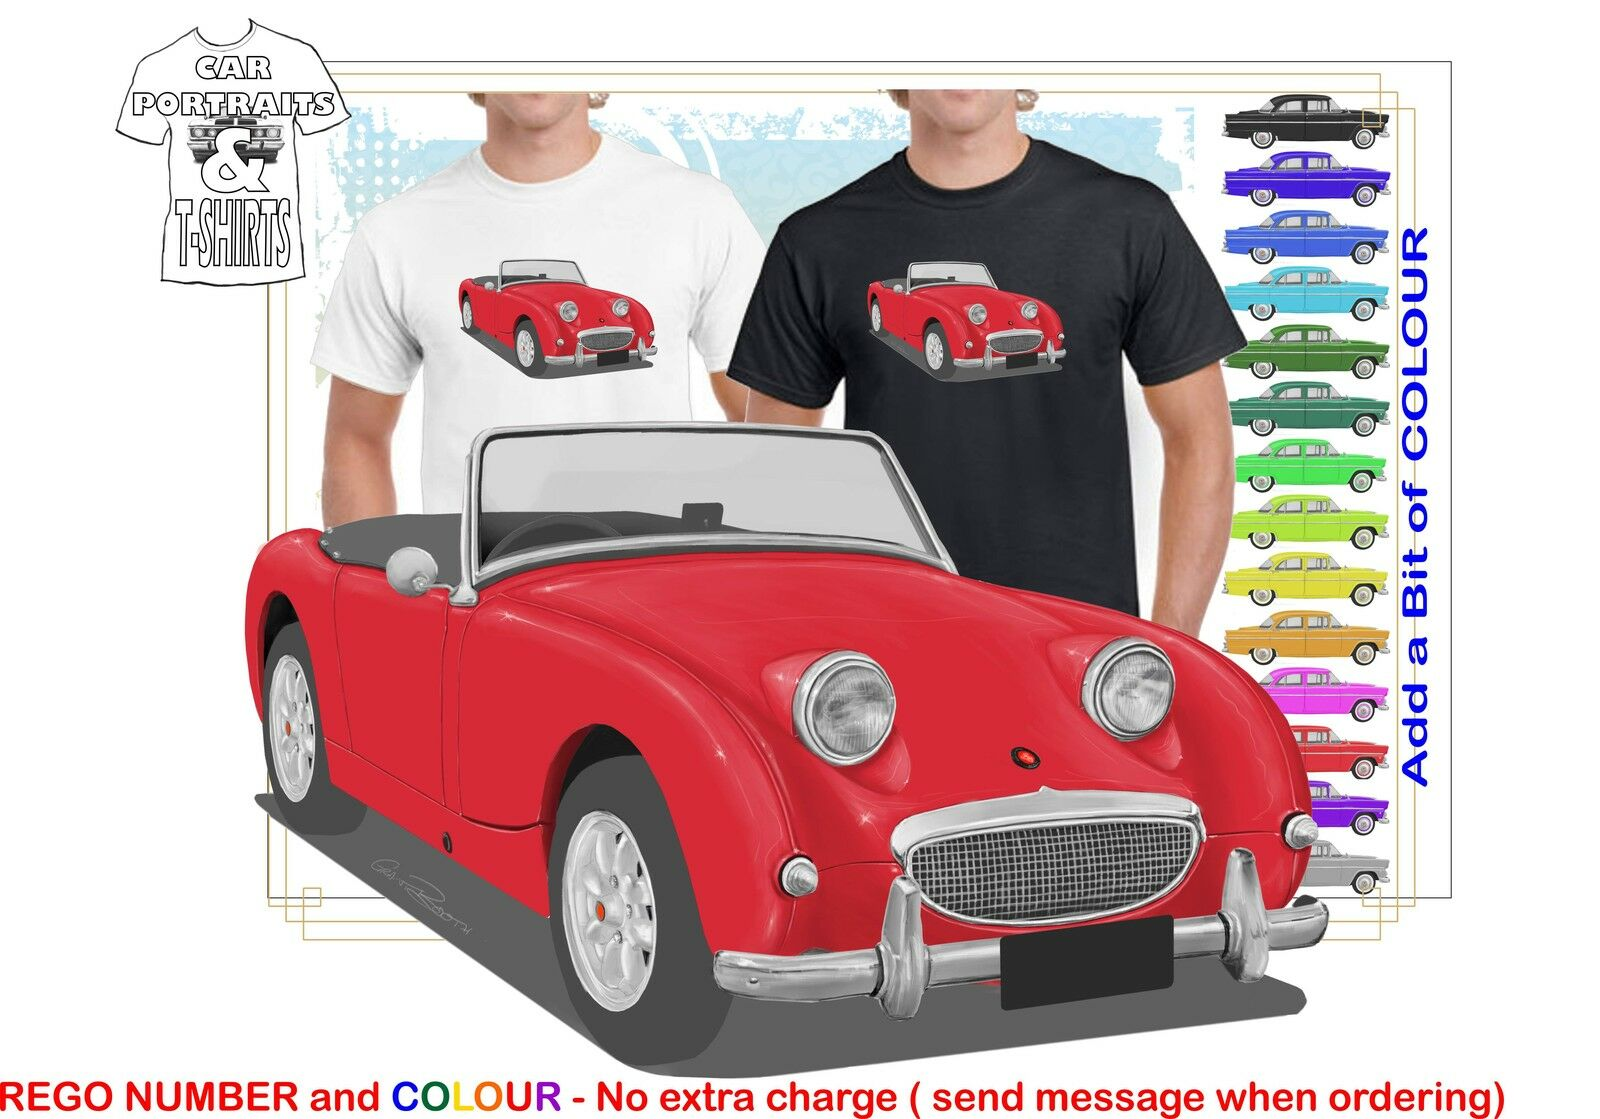 CLASSIC 58-61 AUSTIN HEALEY SPRITE SPORTS ILLUSTRATED T-SHIRT  RETRO SPORTS CAR